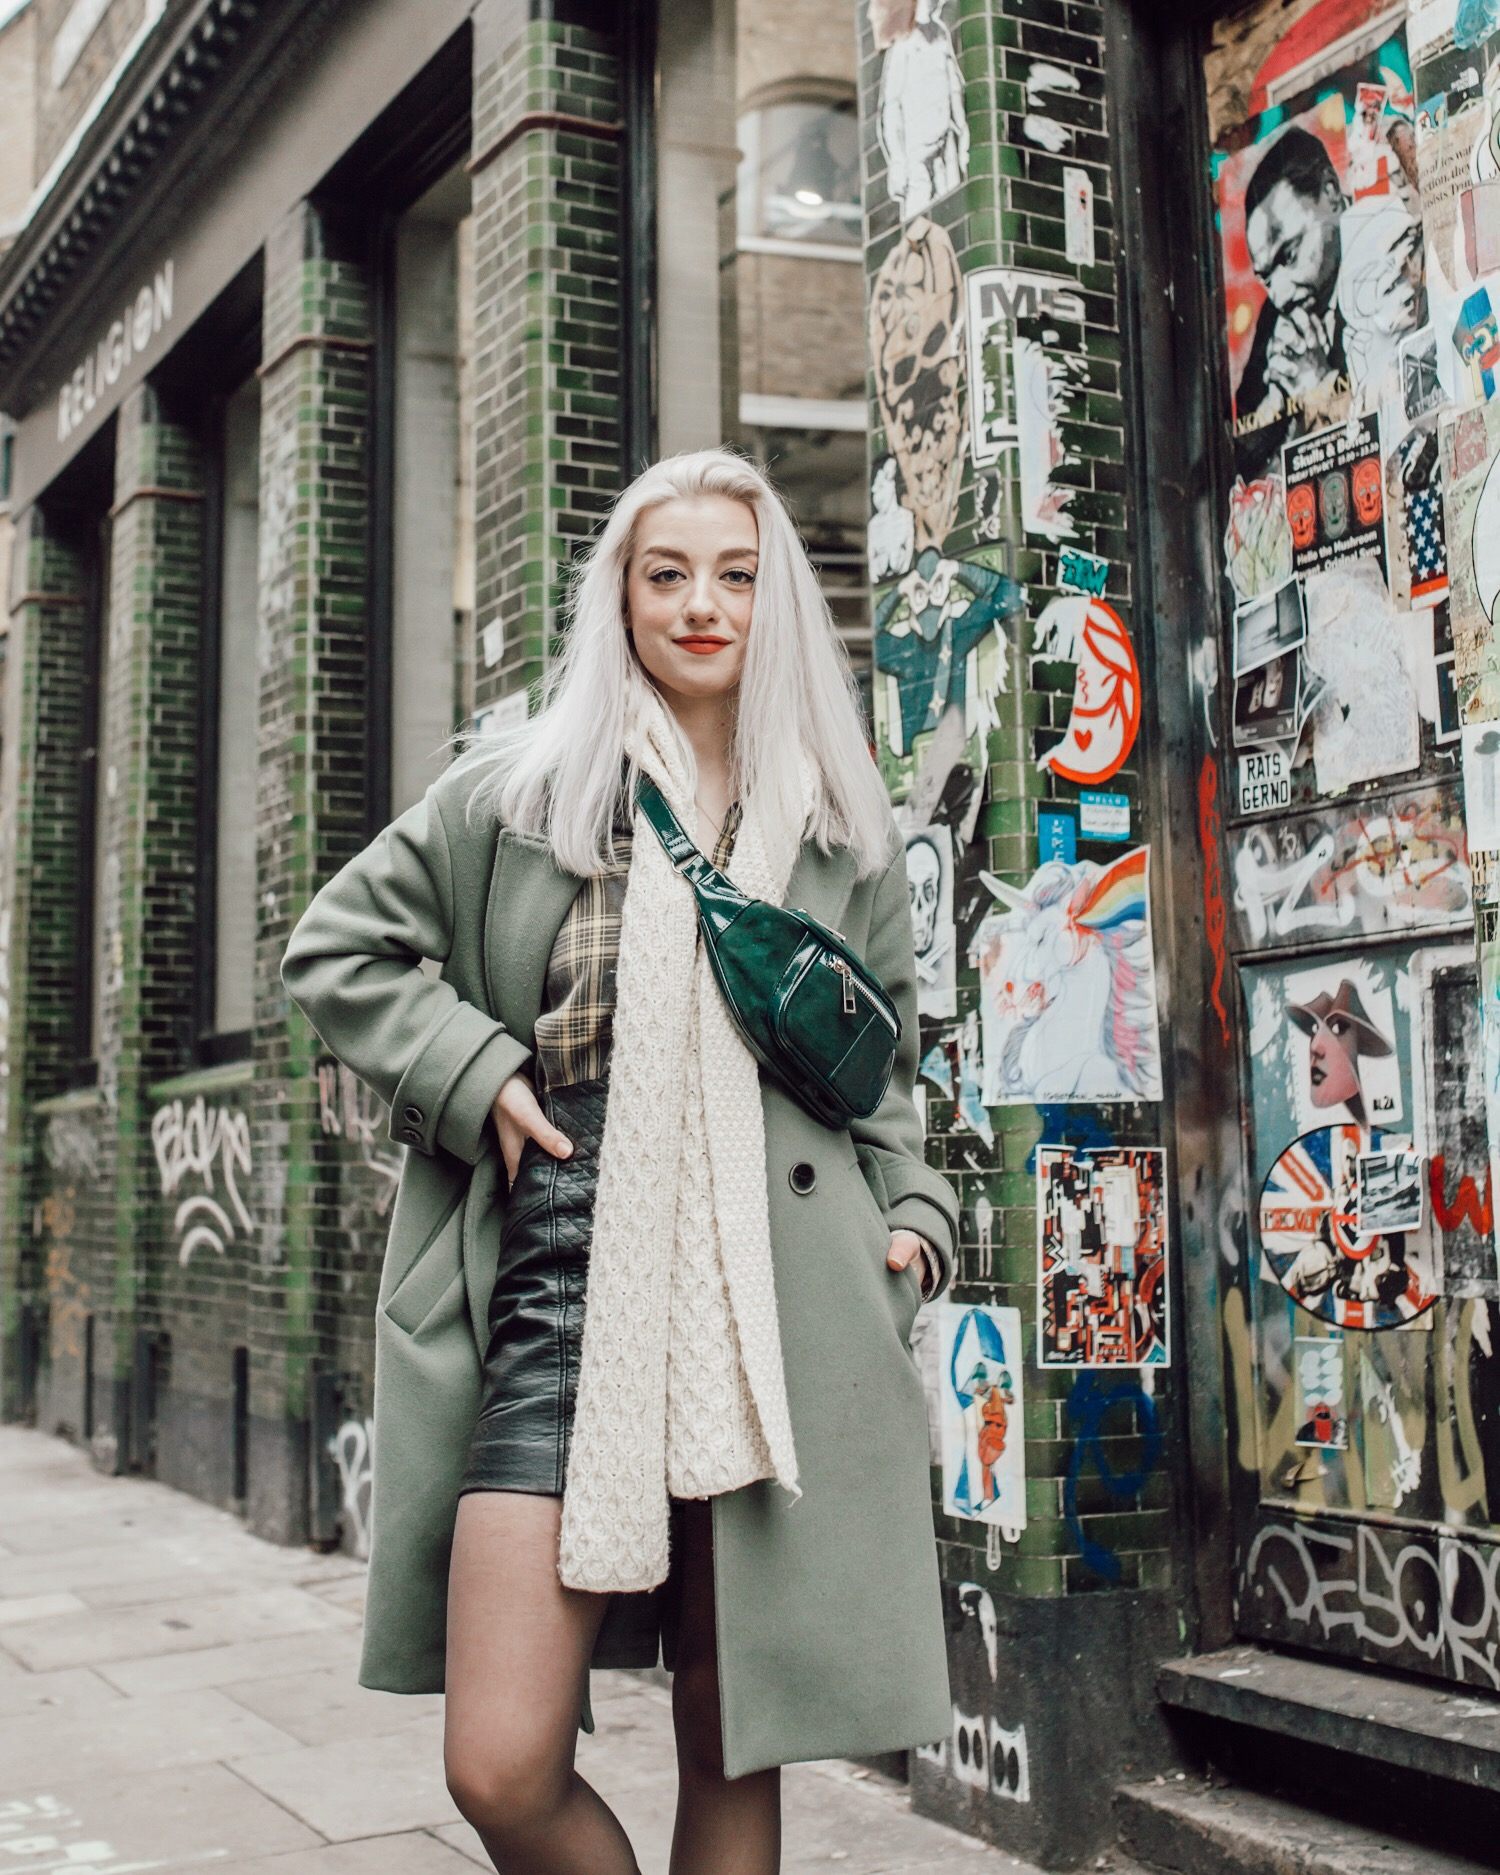 Put on my coolest outfit and struck my coolest post for the coolest location in London, Shoreditch.